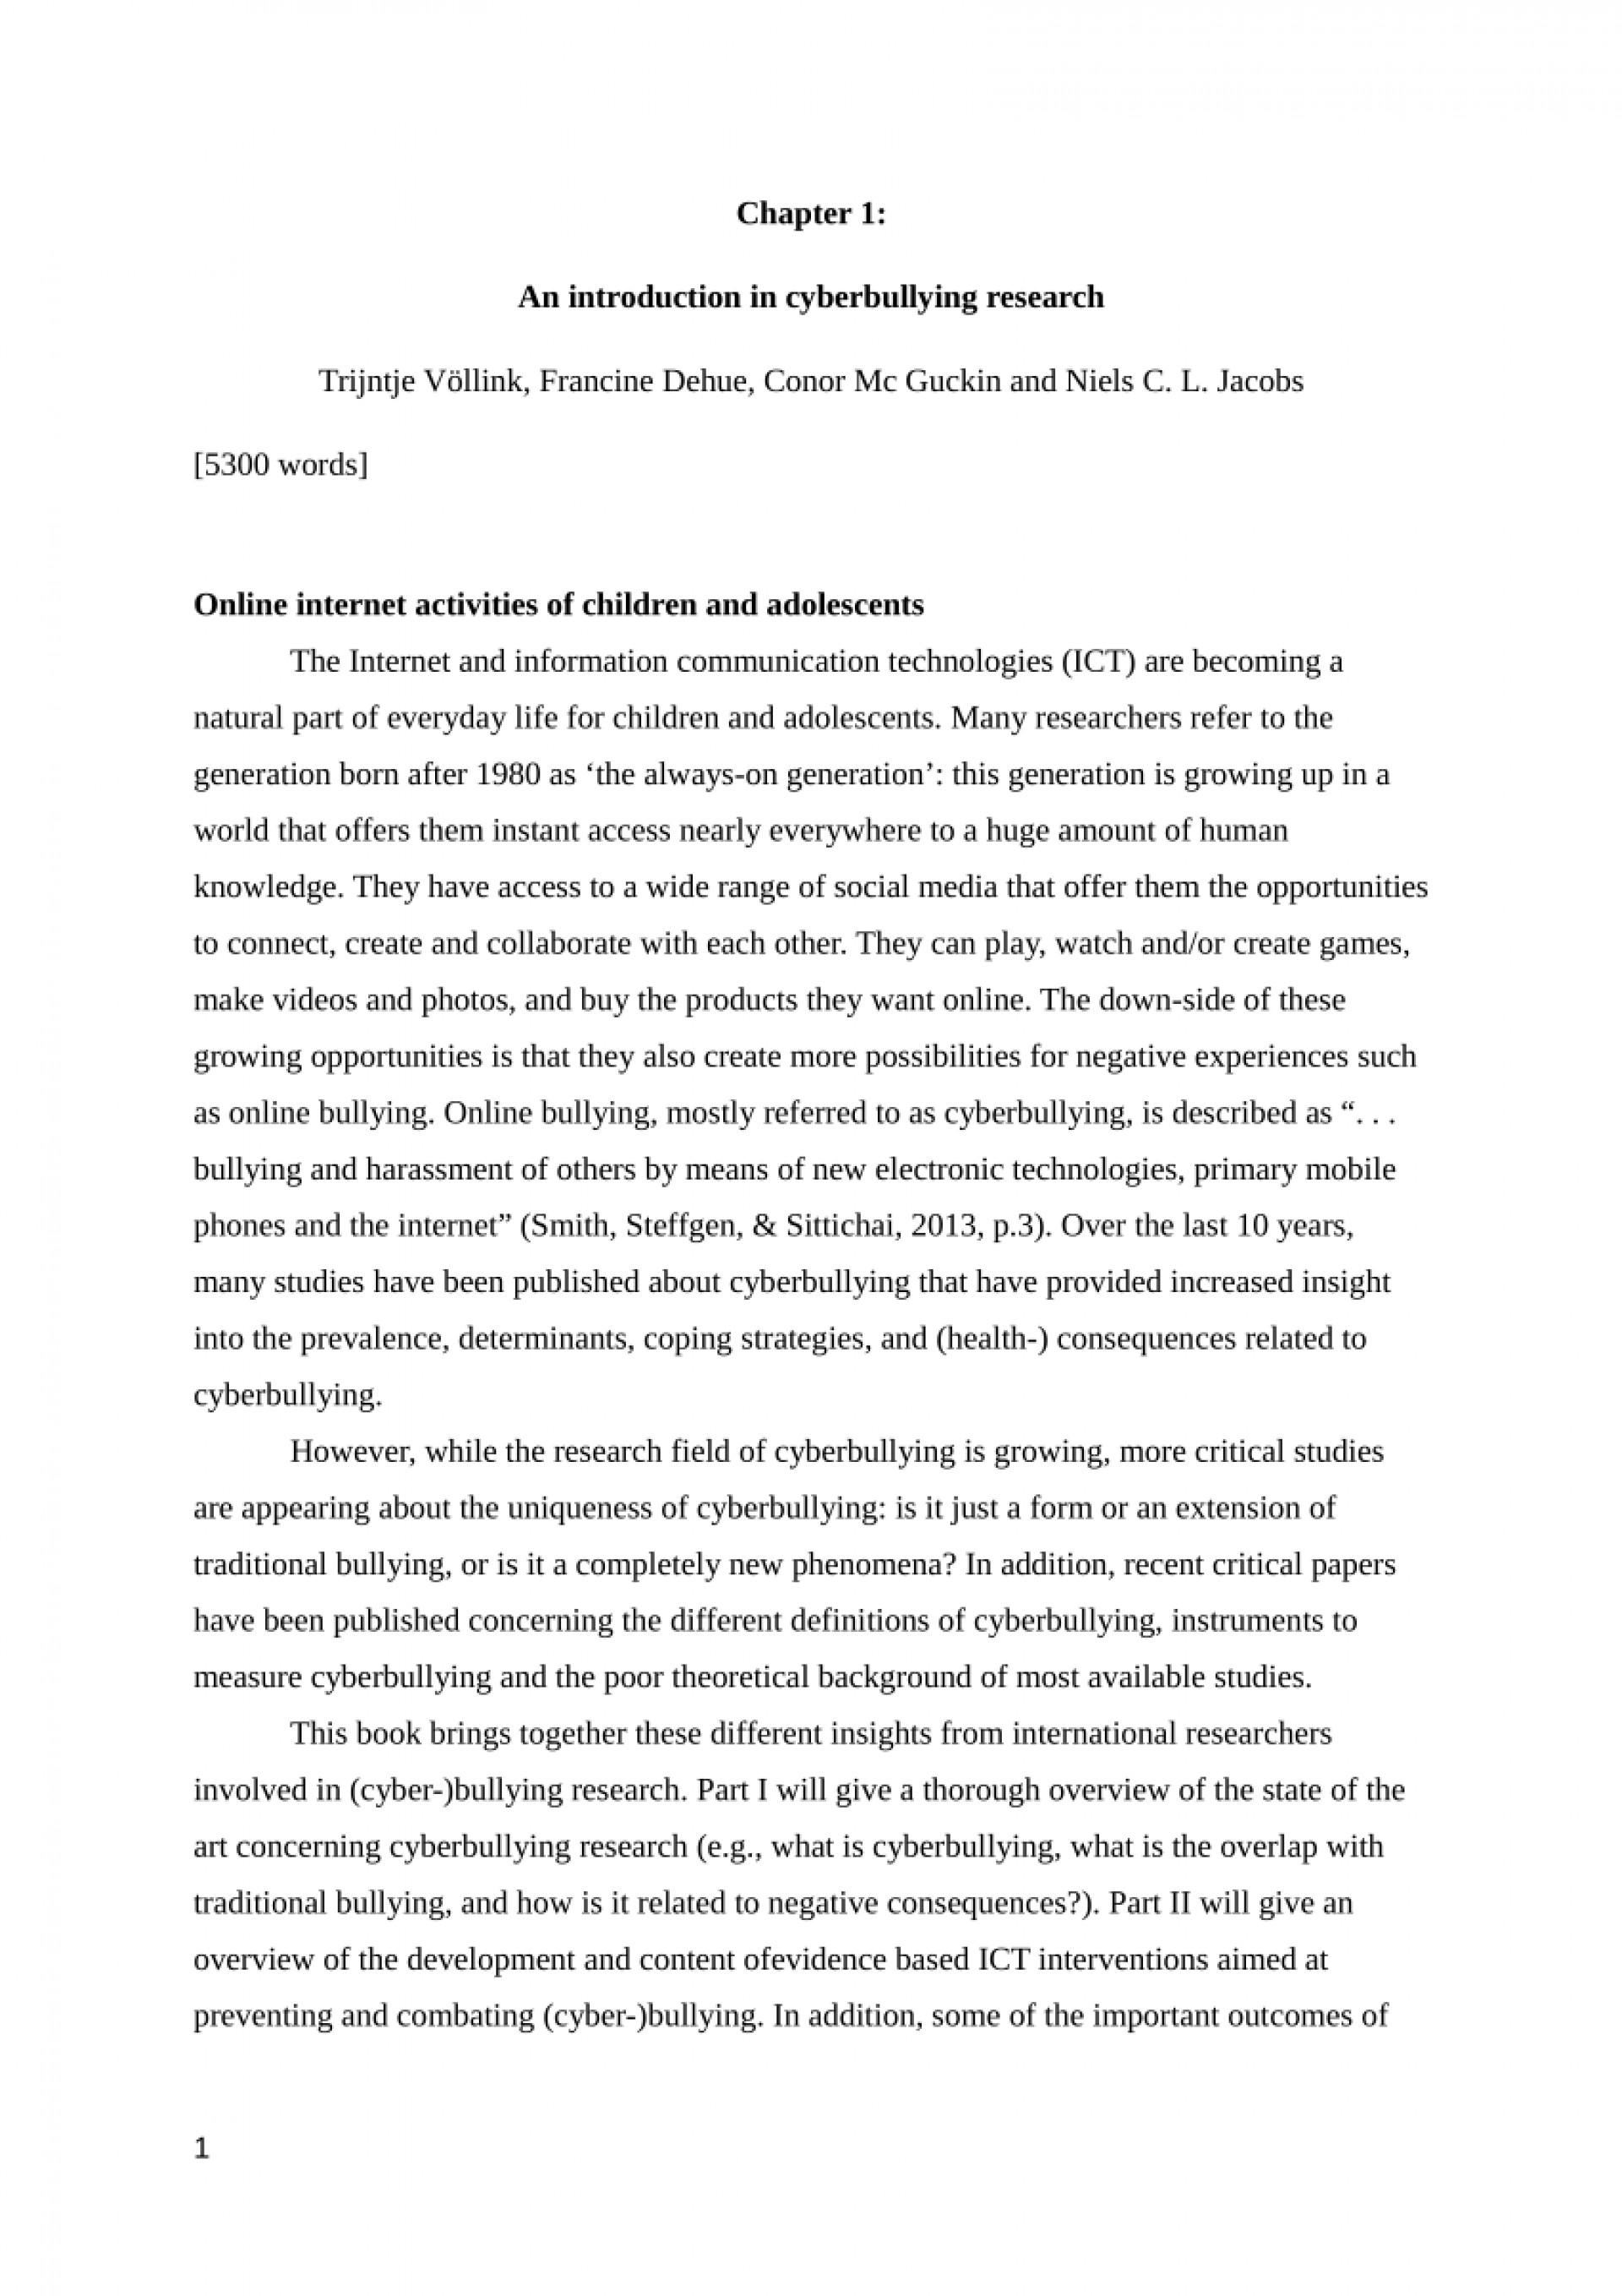 001 Cyberbullying Research Articles Paper Wondrous About Chapter 1 Studies Cyber Bullying Journal Pdf 1920